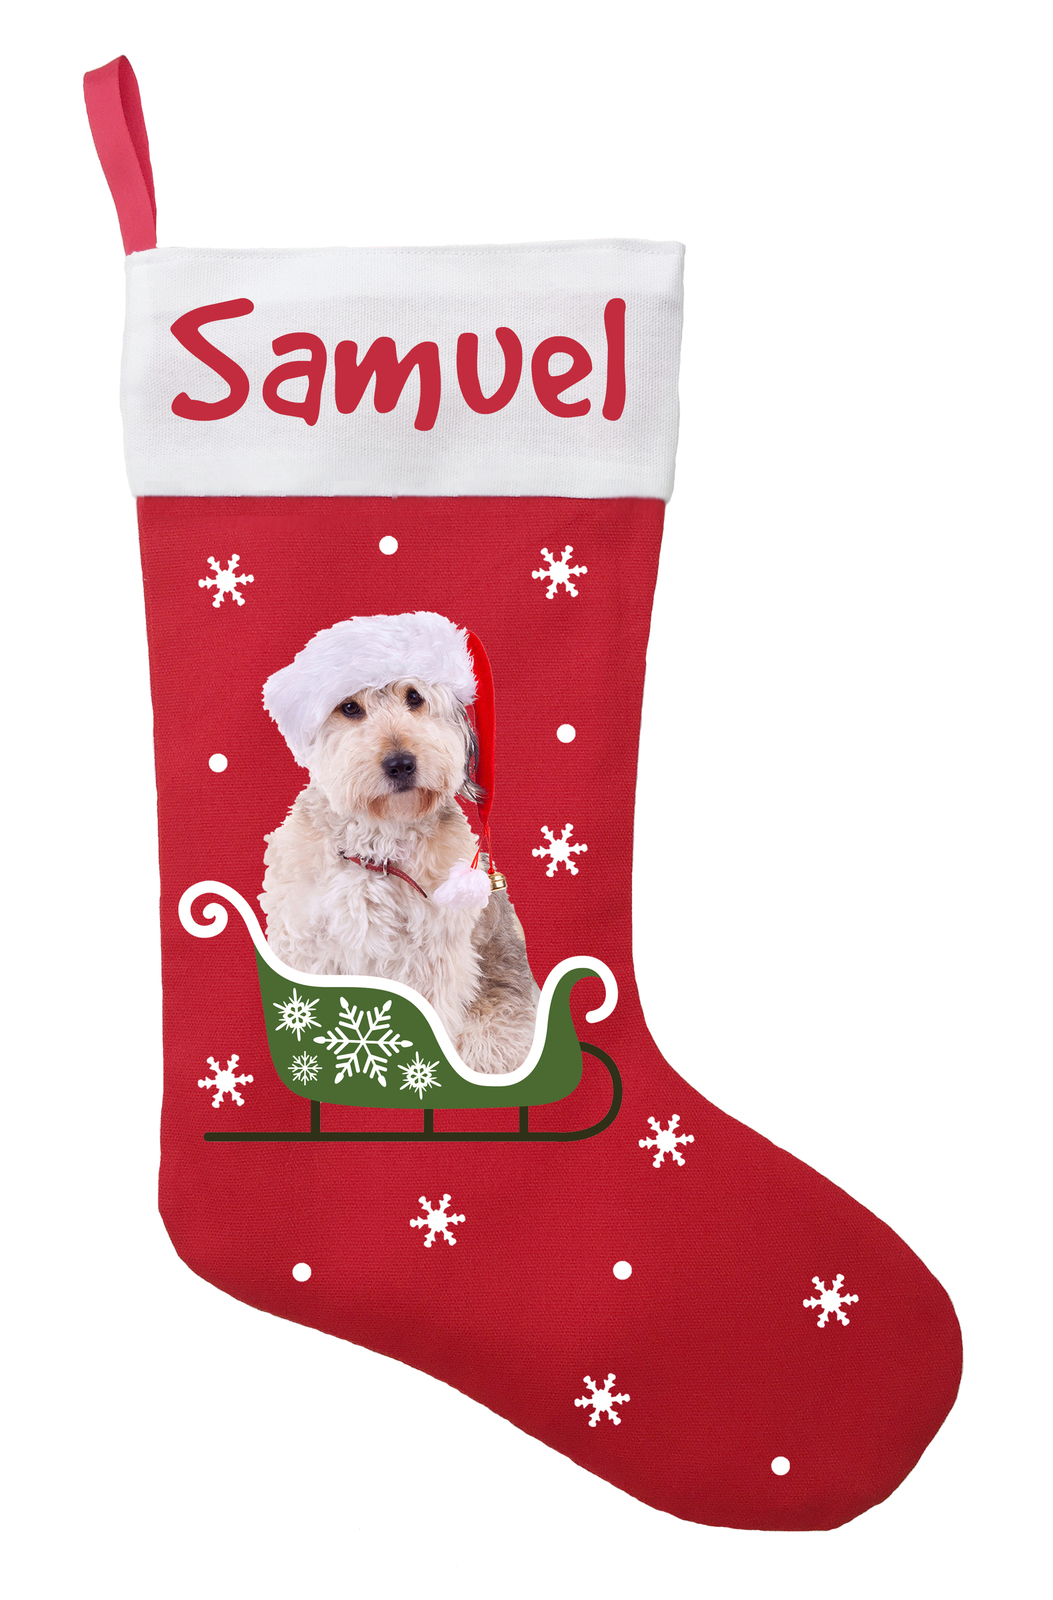 Doodle Dog Christmas Stocking - Personalized and Hand Made Doodle Stocking - Gre